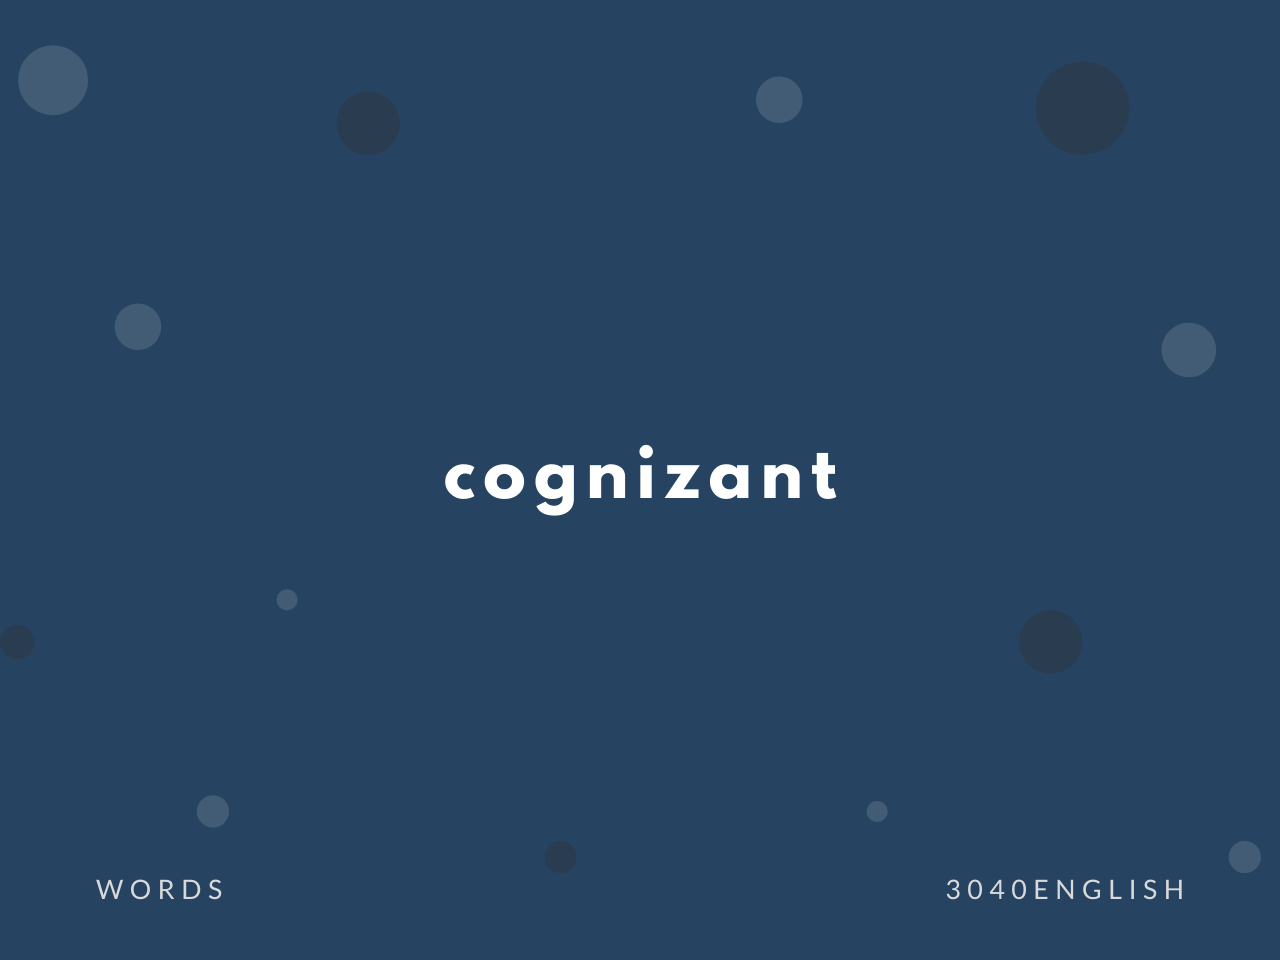 cognizant / cognisant の意味と簡単な使い方【音読用例文あり】